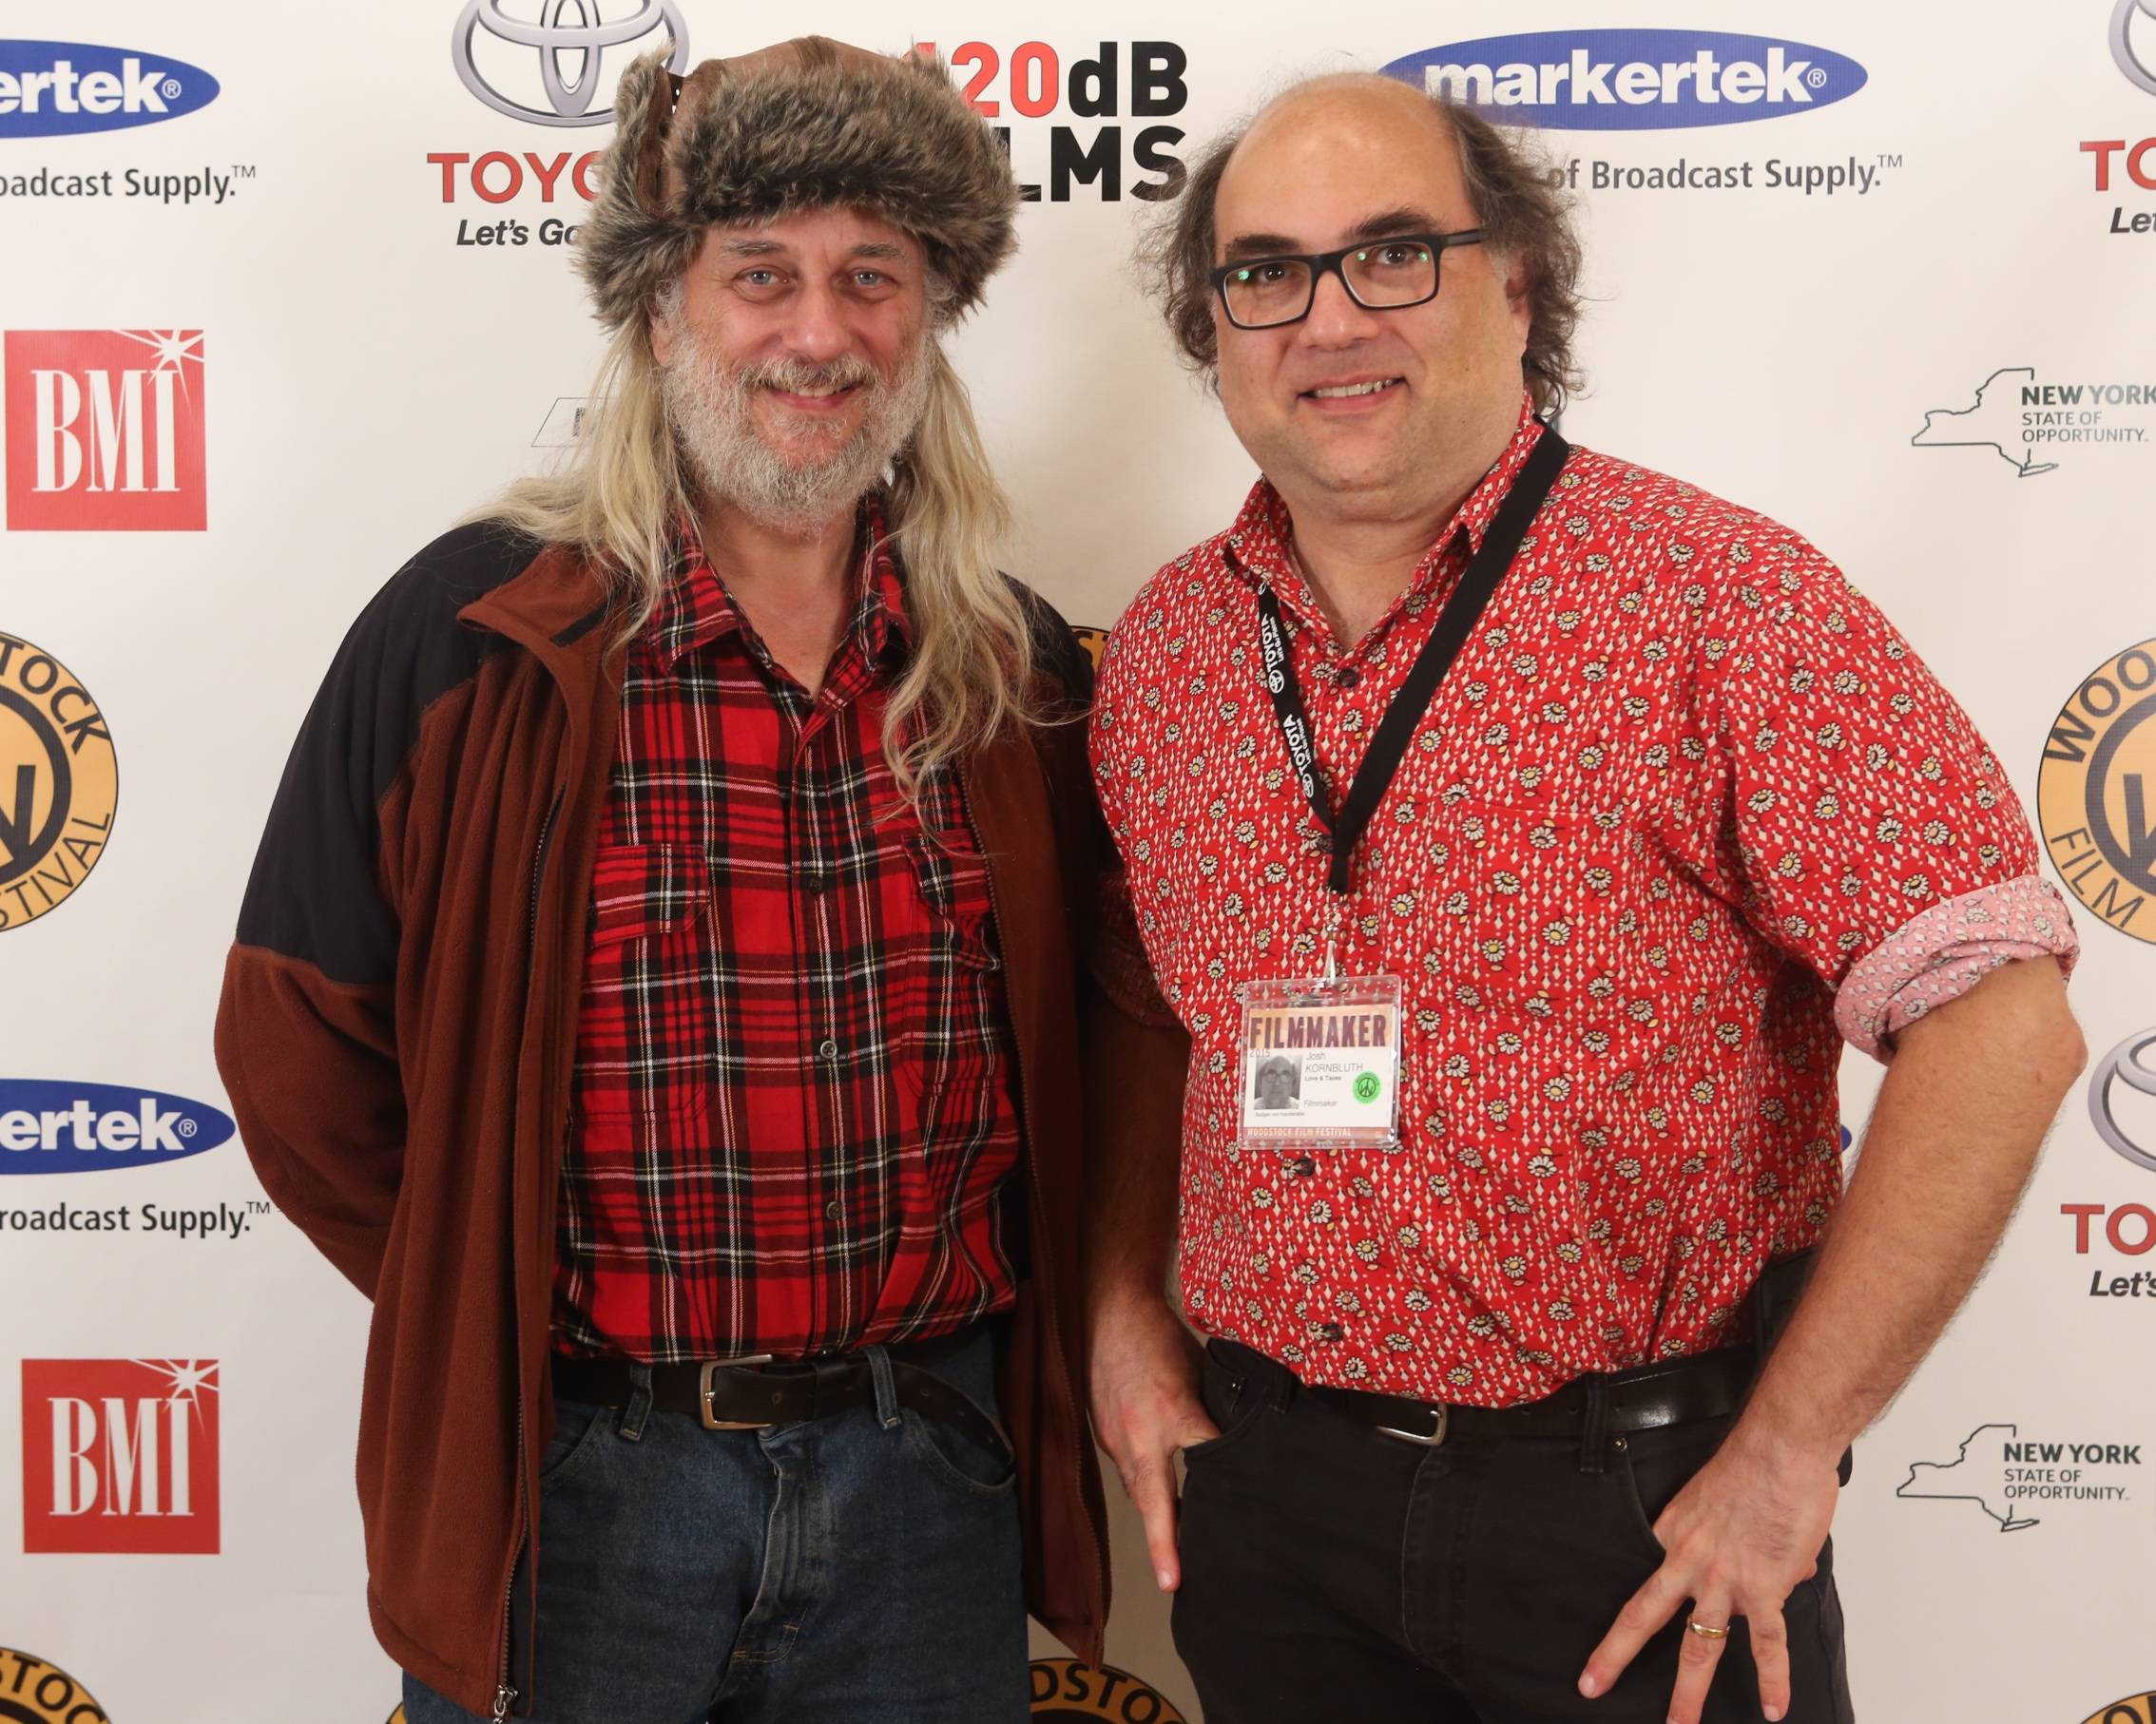 Woodstock Film Festival co-founder/director  Laurent Rejto  with  Josh Kornbluth  from  LOVE & TAXES  at filmmaker lounge for 2015 Woodstock Film Festival. (Photo by Anjali Bermain)